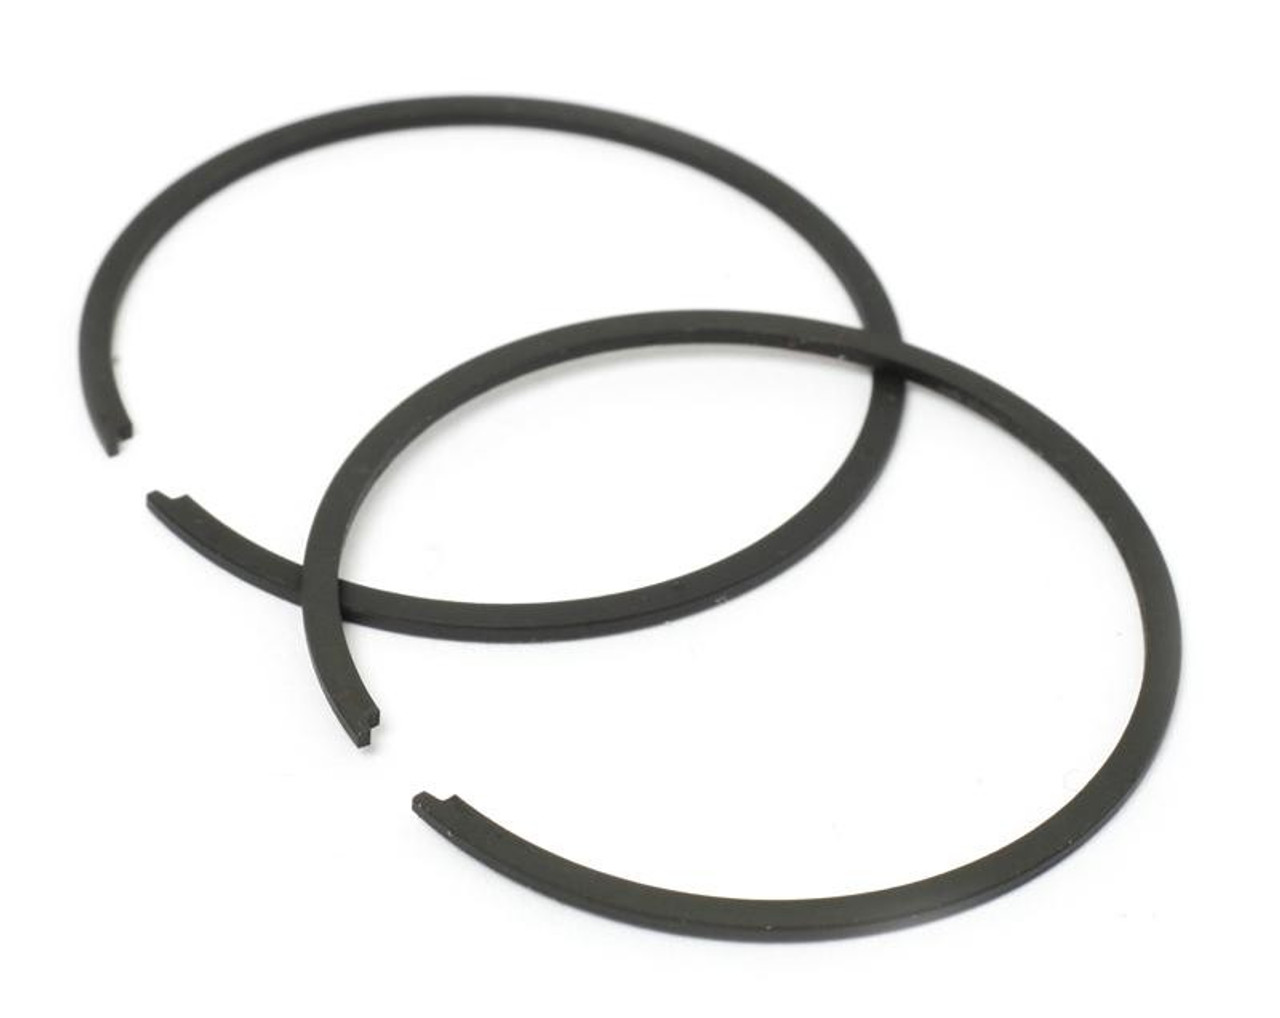 38mm x 2mm FG Piston Ring Set